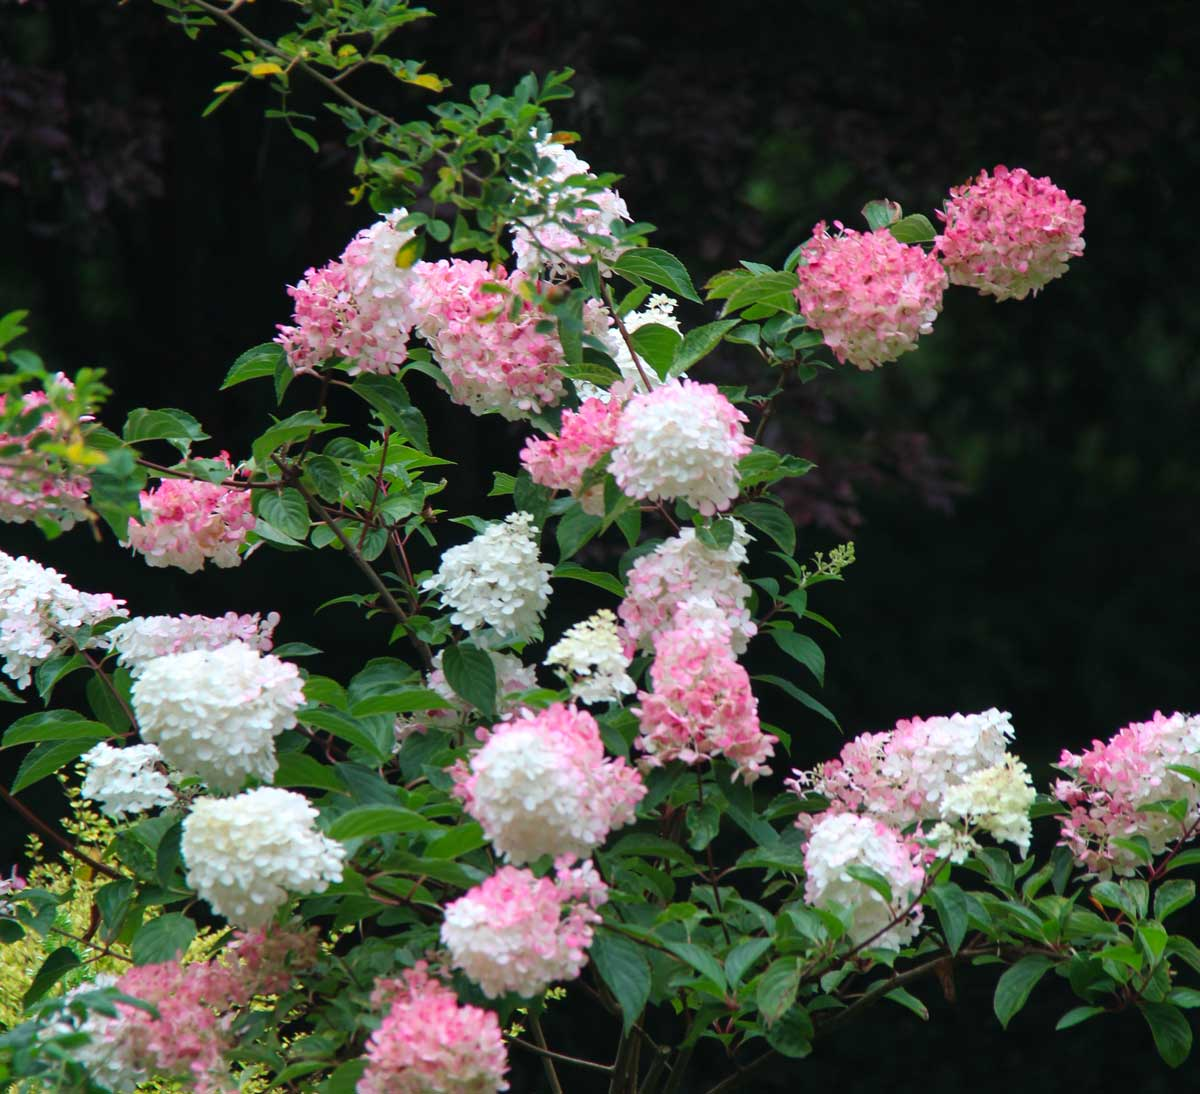 close-up on pink and white hydrangea flowers